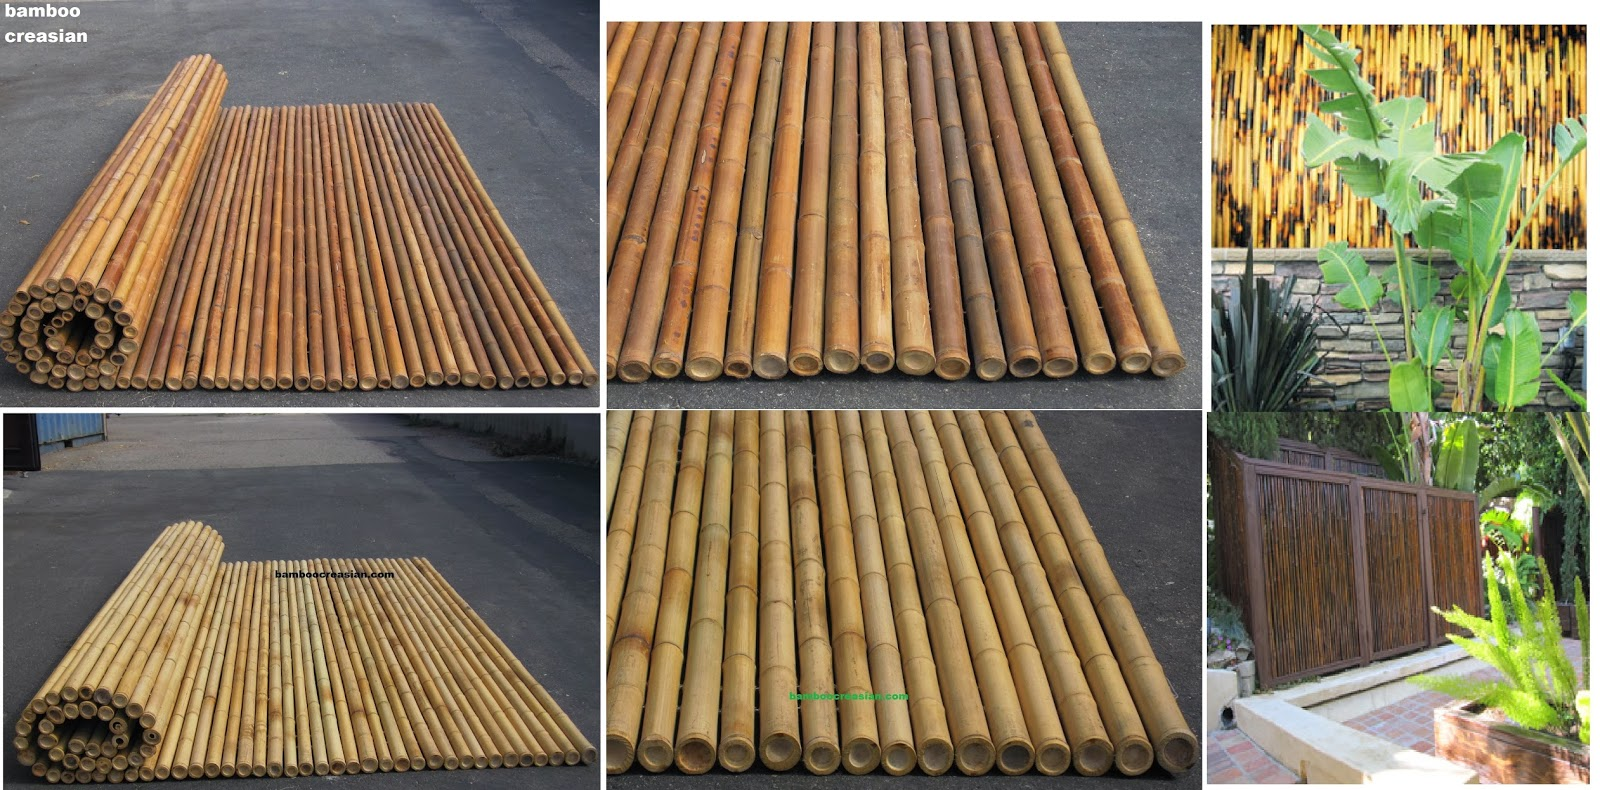 Creasians Fencing 6ft Bamboo Fencing rolls 1dia 8ft Rolled Fence Panel34